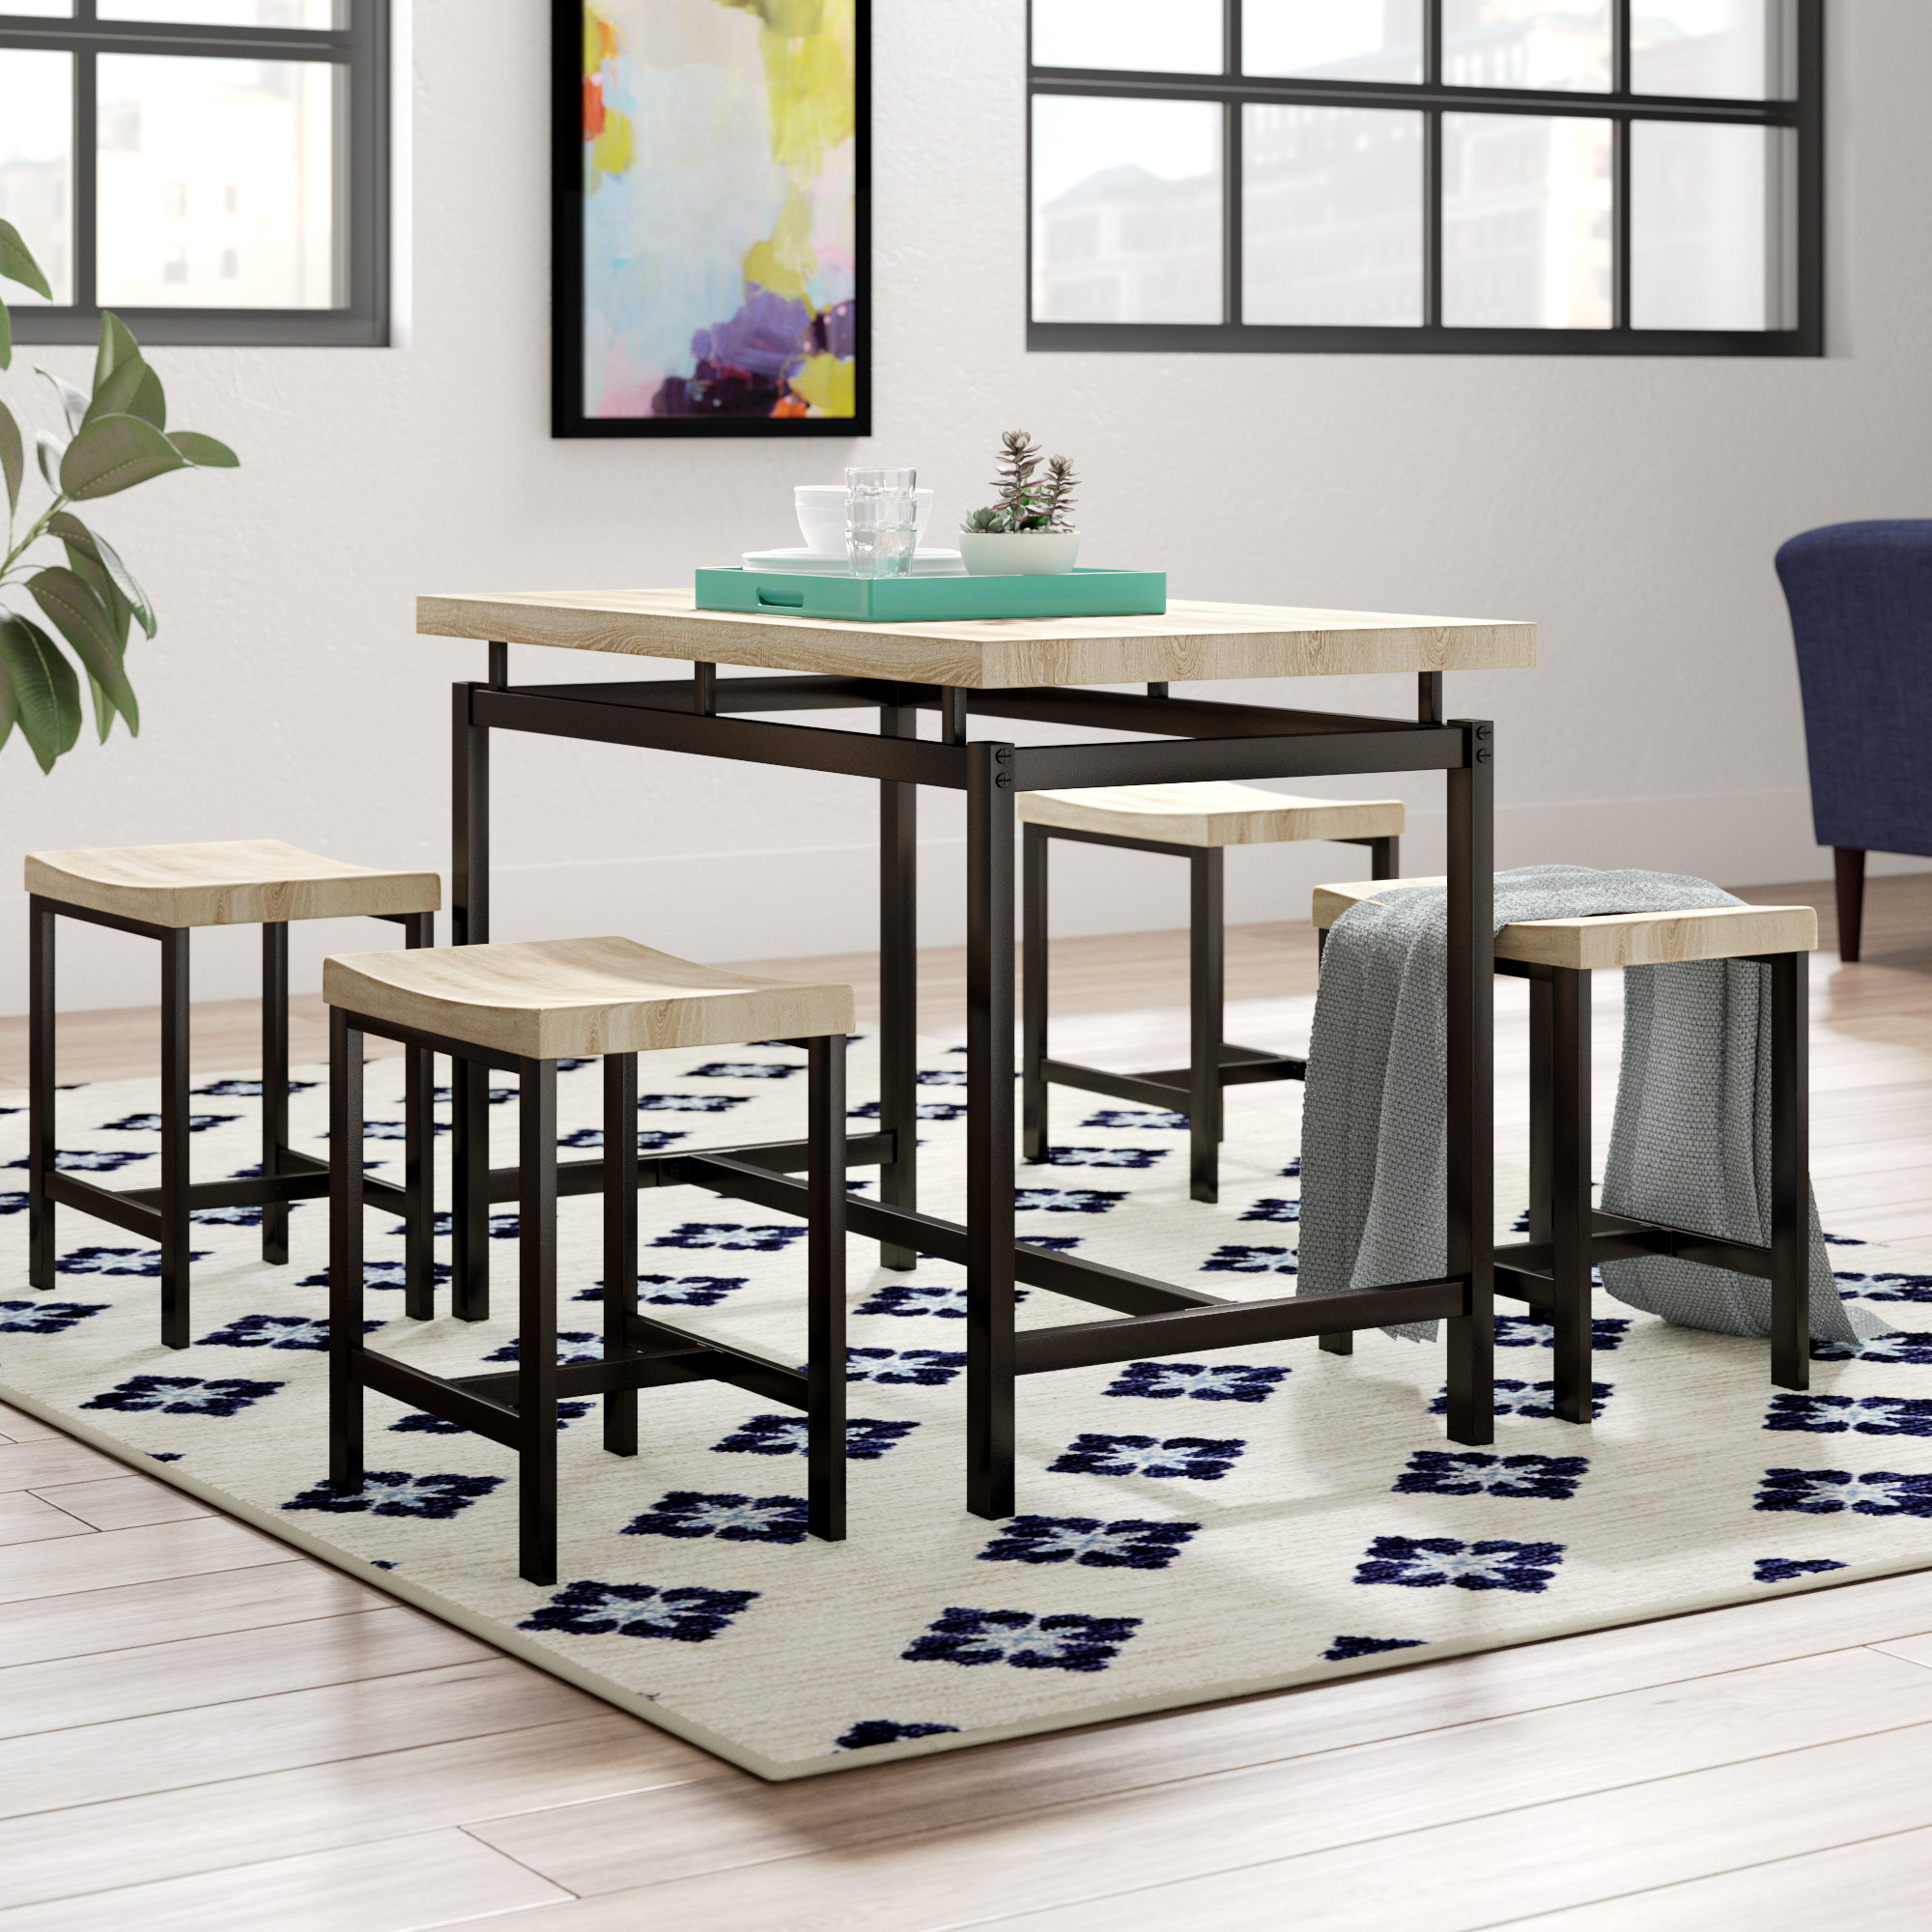 Wayfair With Widely Used Bryson 5 Piece Dining Sets (View 2 of 25)